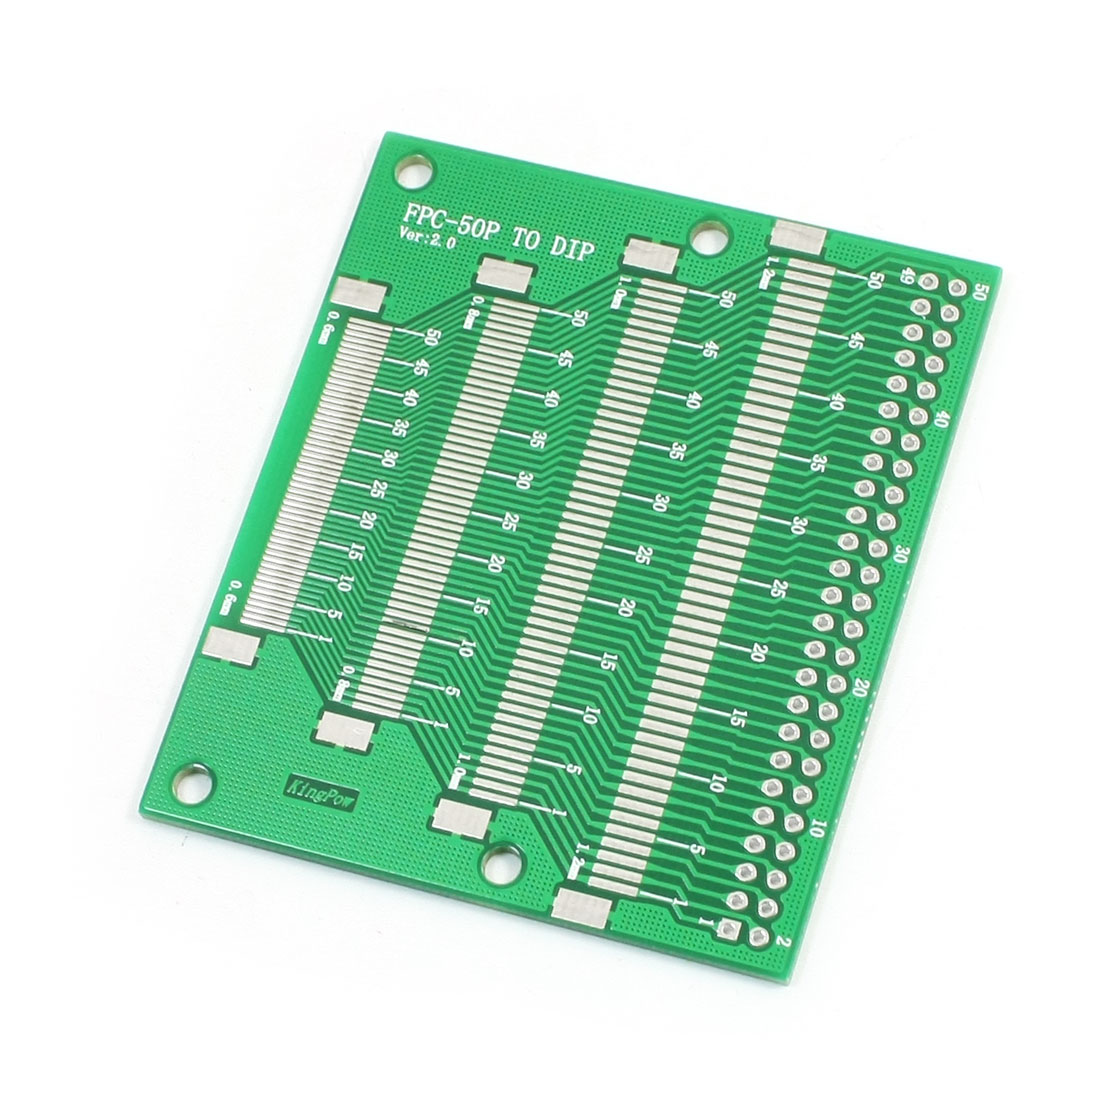 SMD SMT 2.54mm Pitch FPC50P DIP Mounting Dual Sides IC PCB Adapter Converter Plate Board